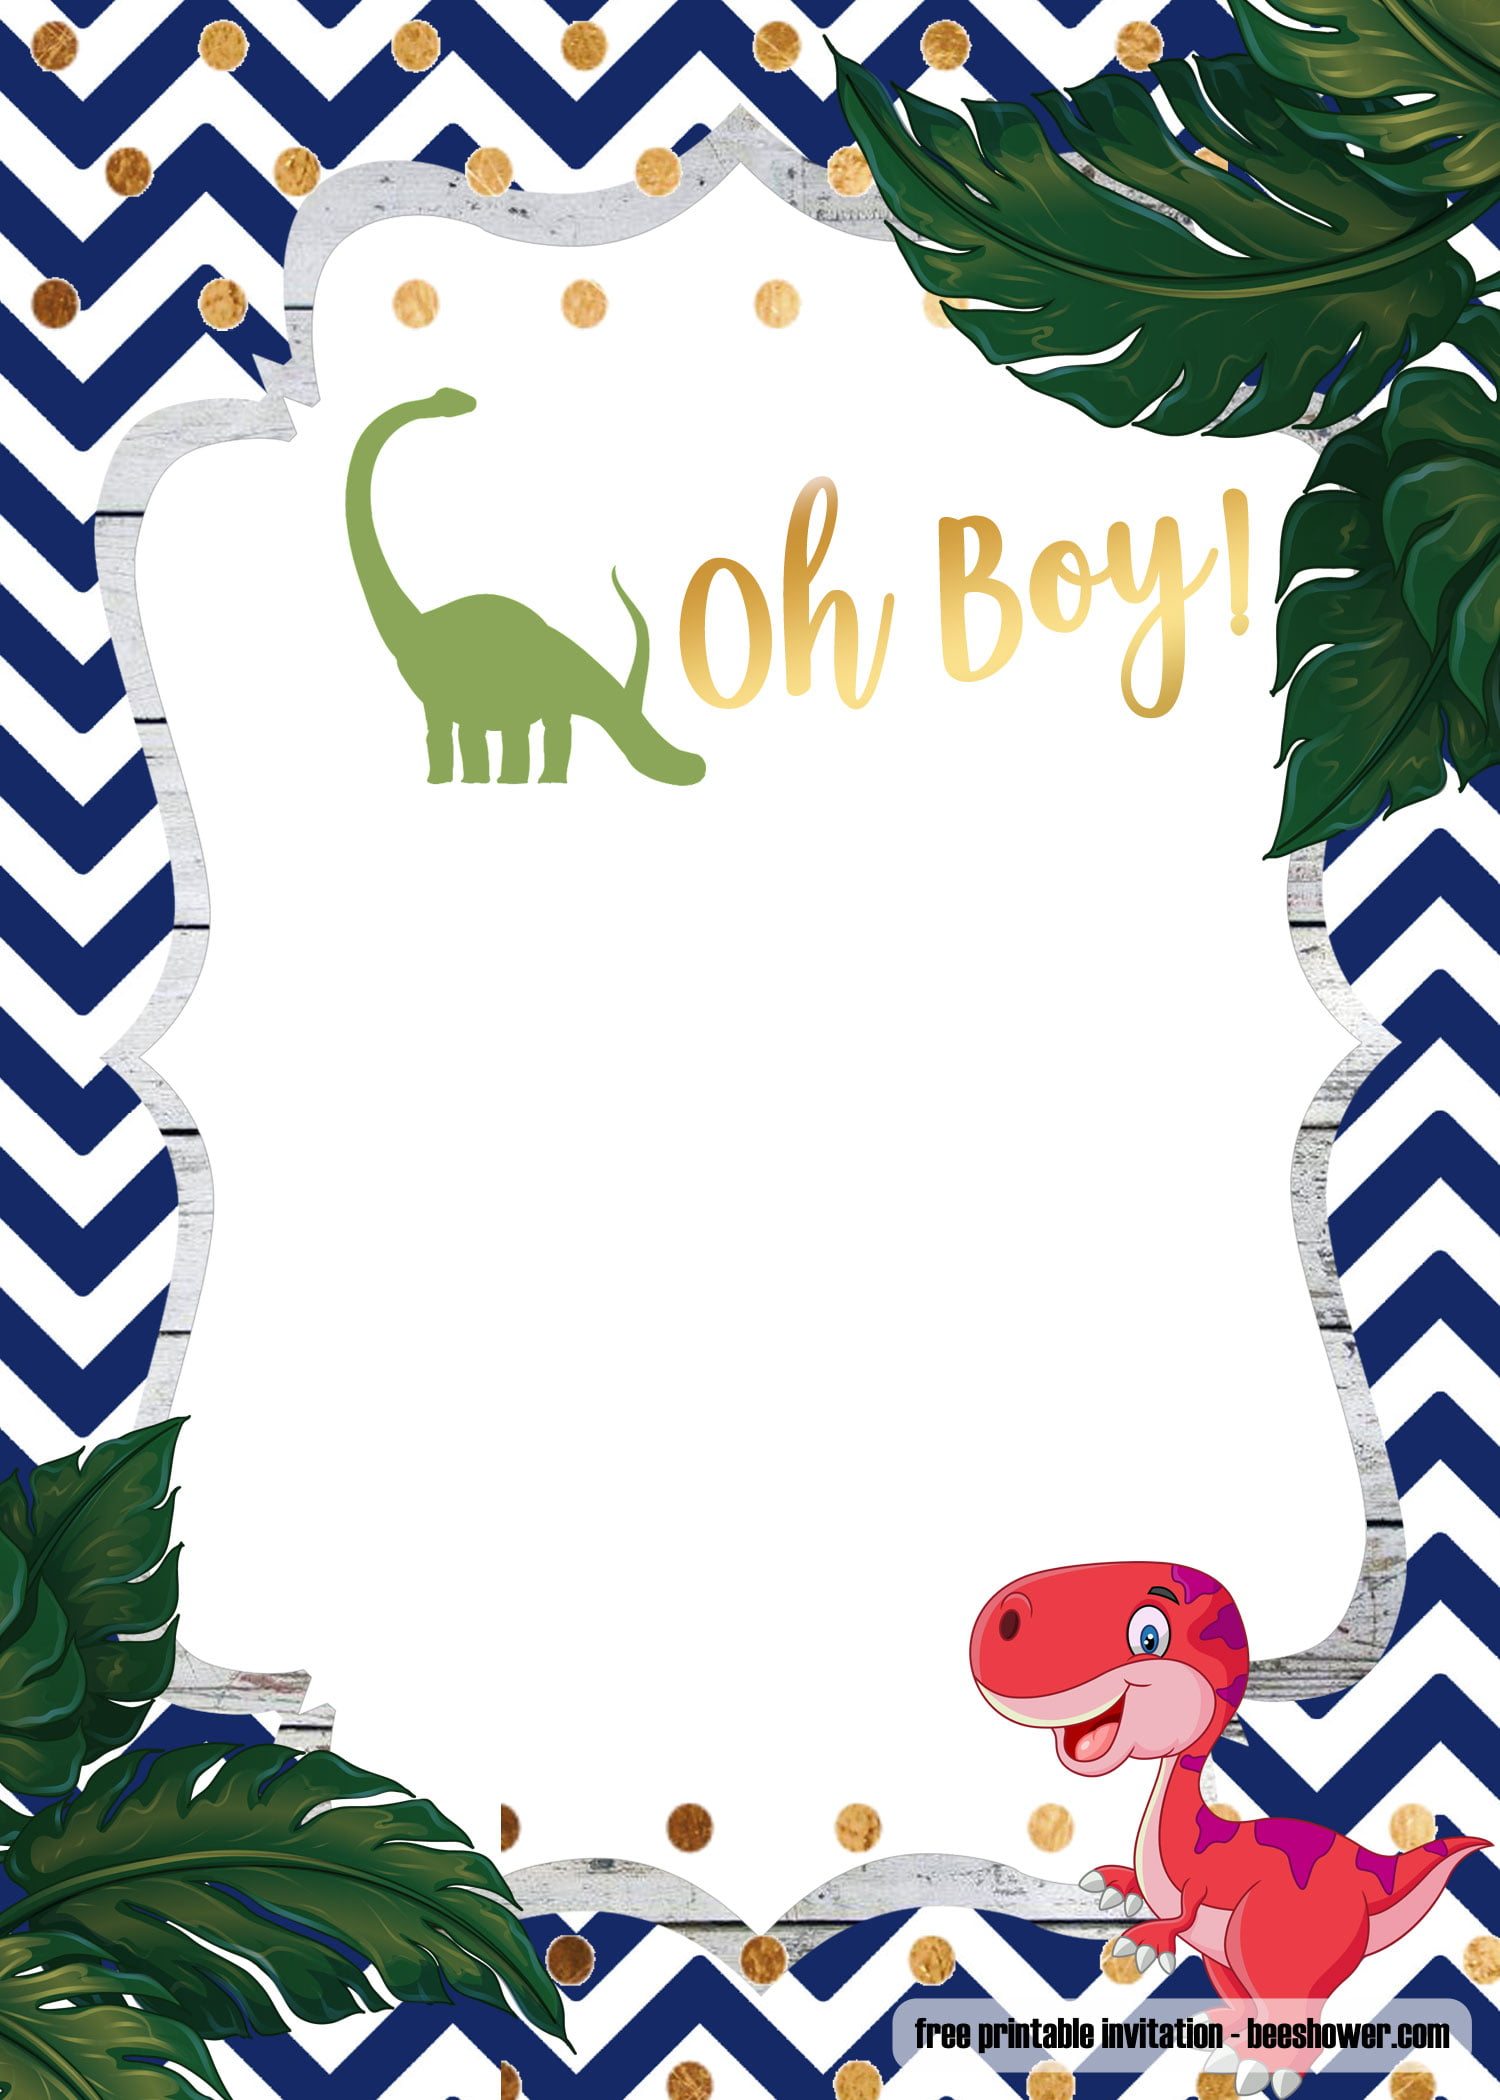 A Dinosaur Template For Your Baby Shower Invitation